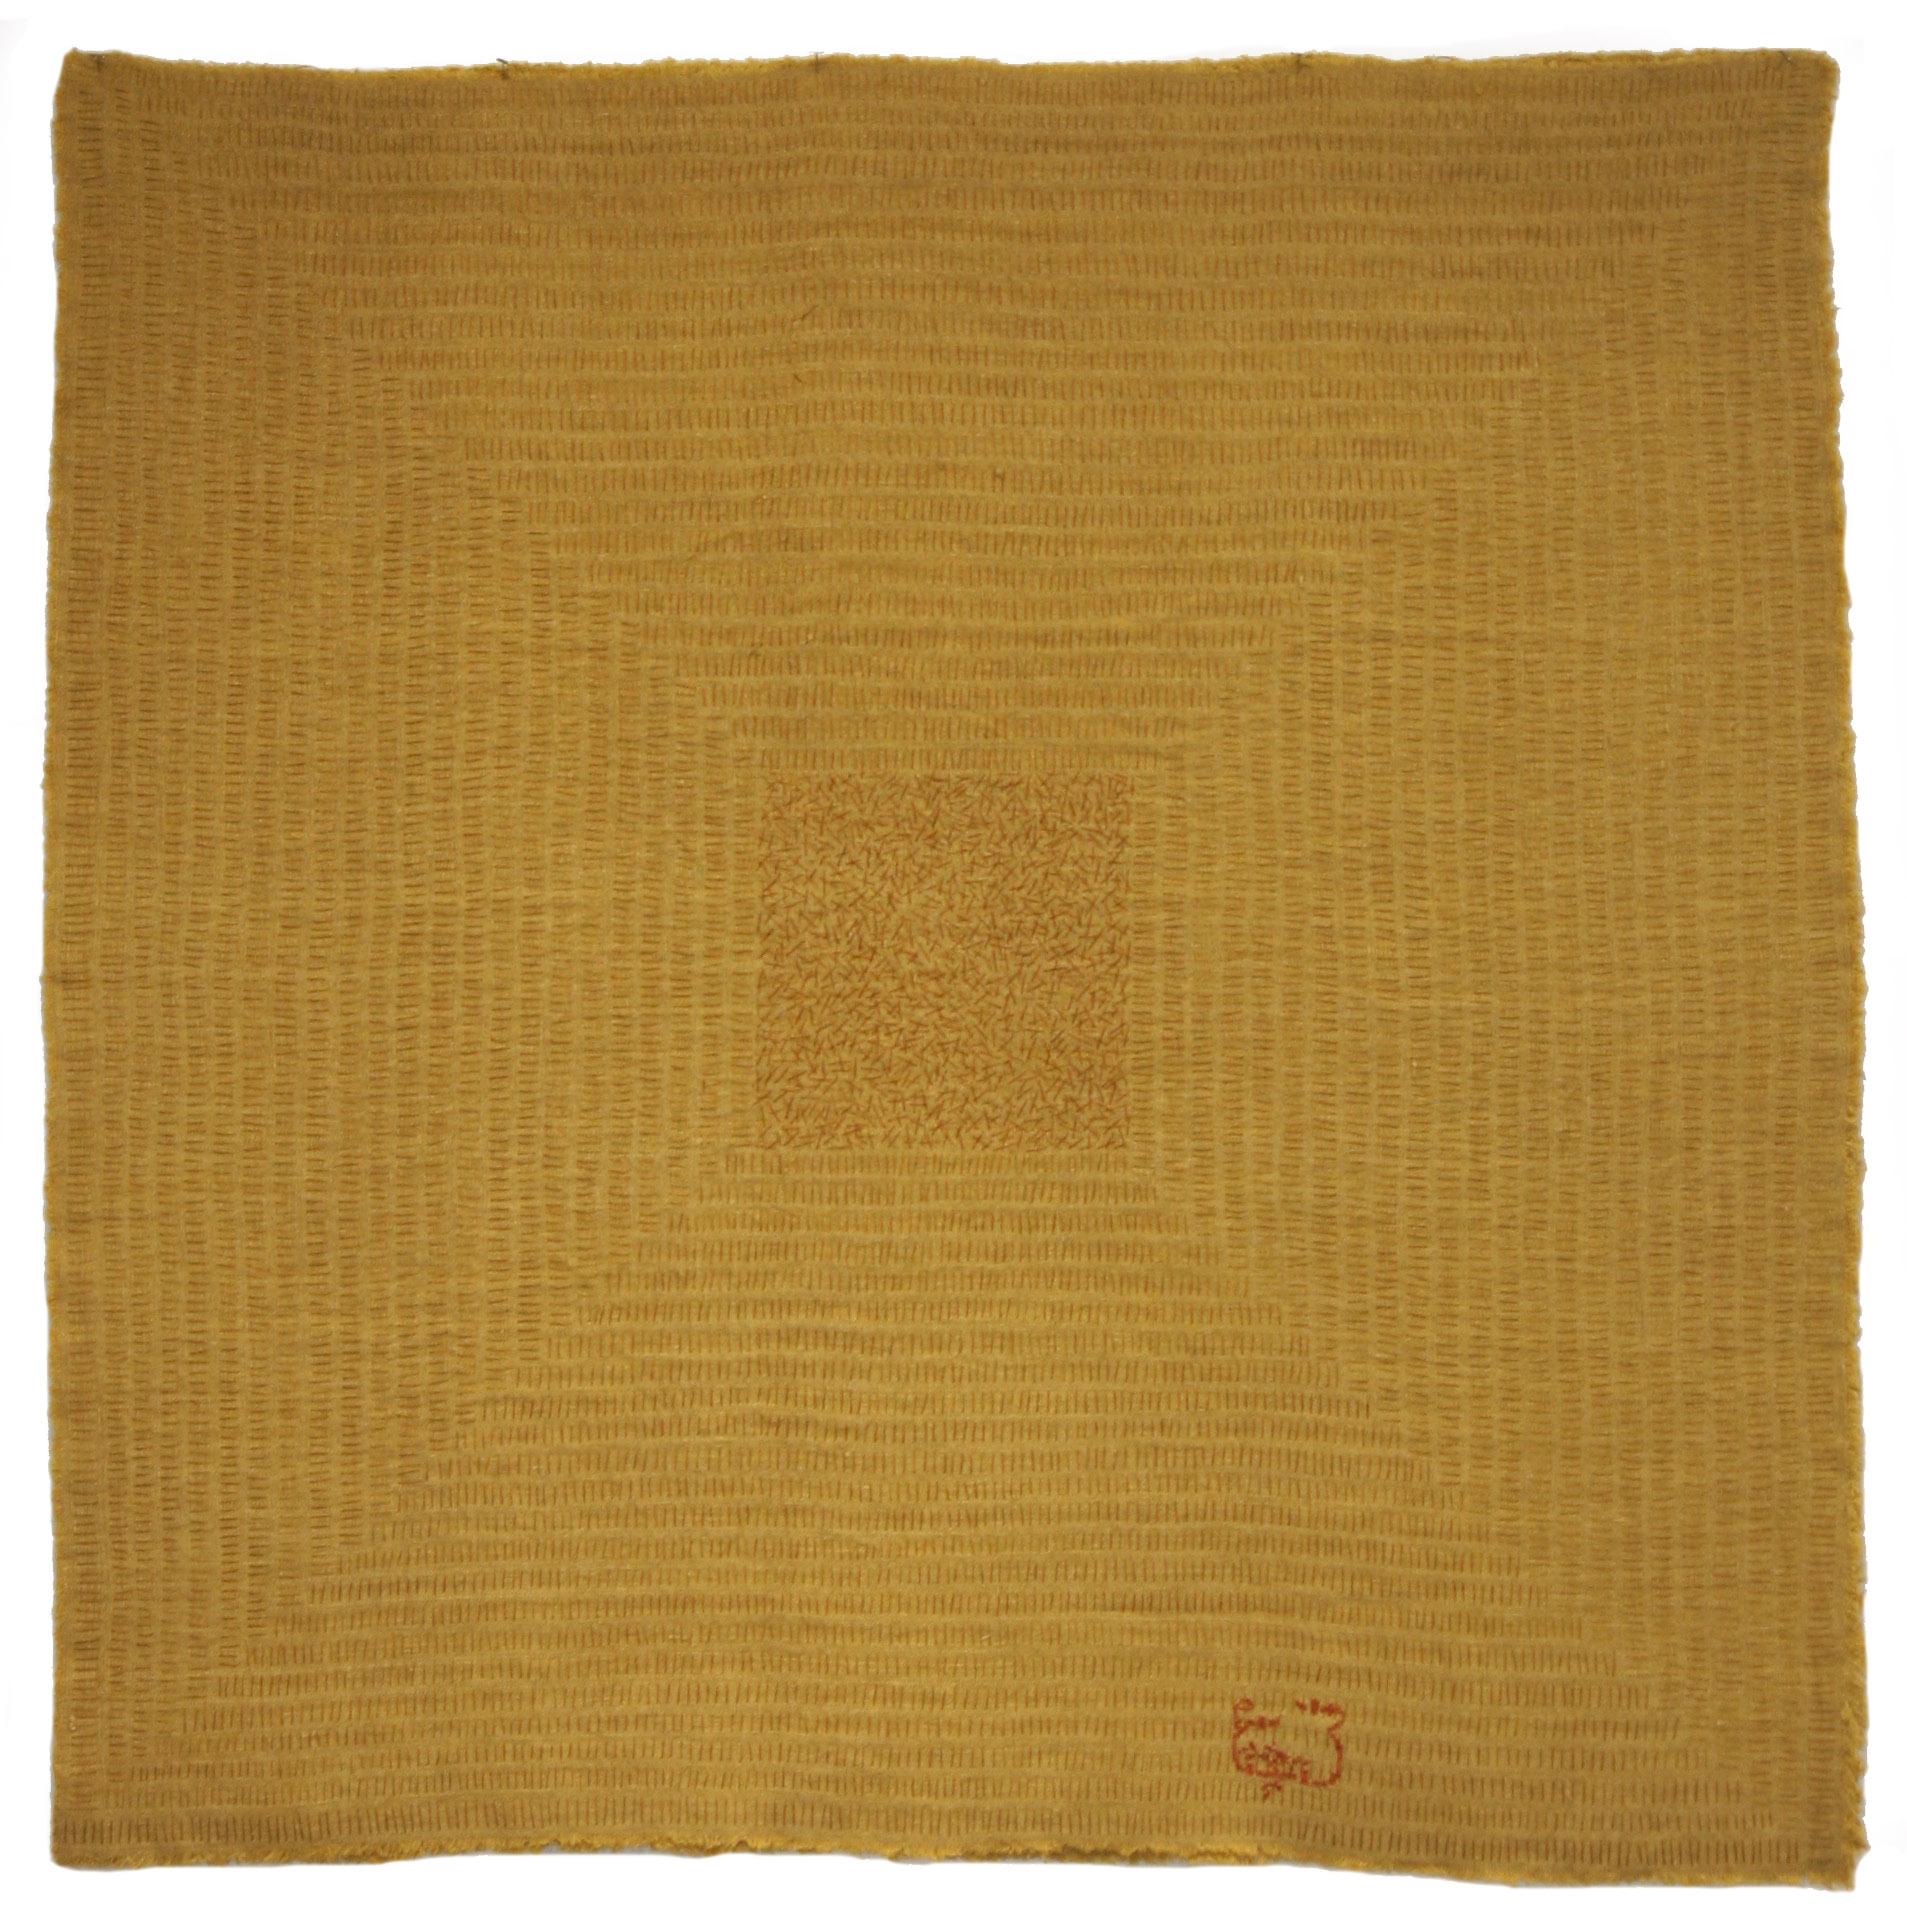 FoT Colombia Gold 100x100cm, SOLD (1).jpg